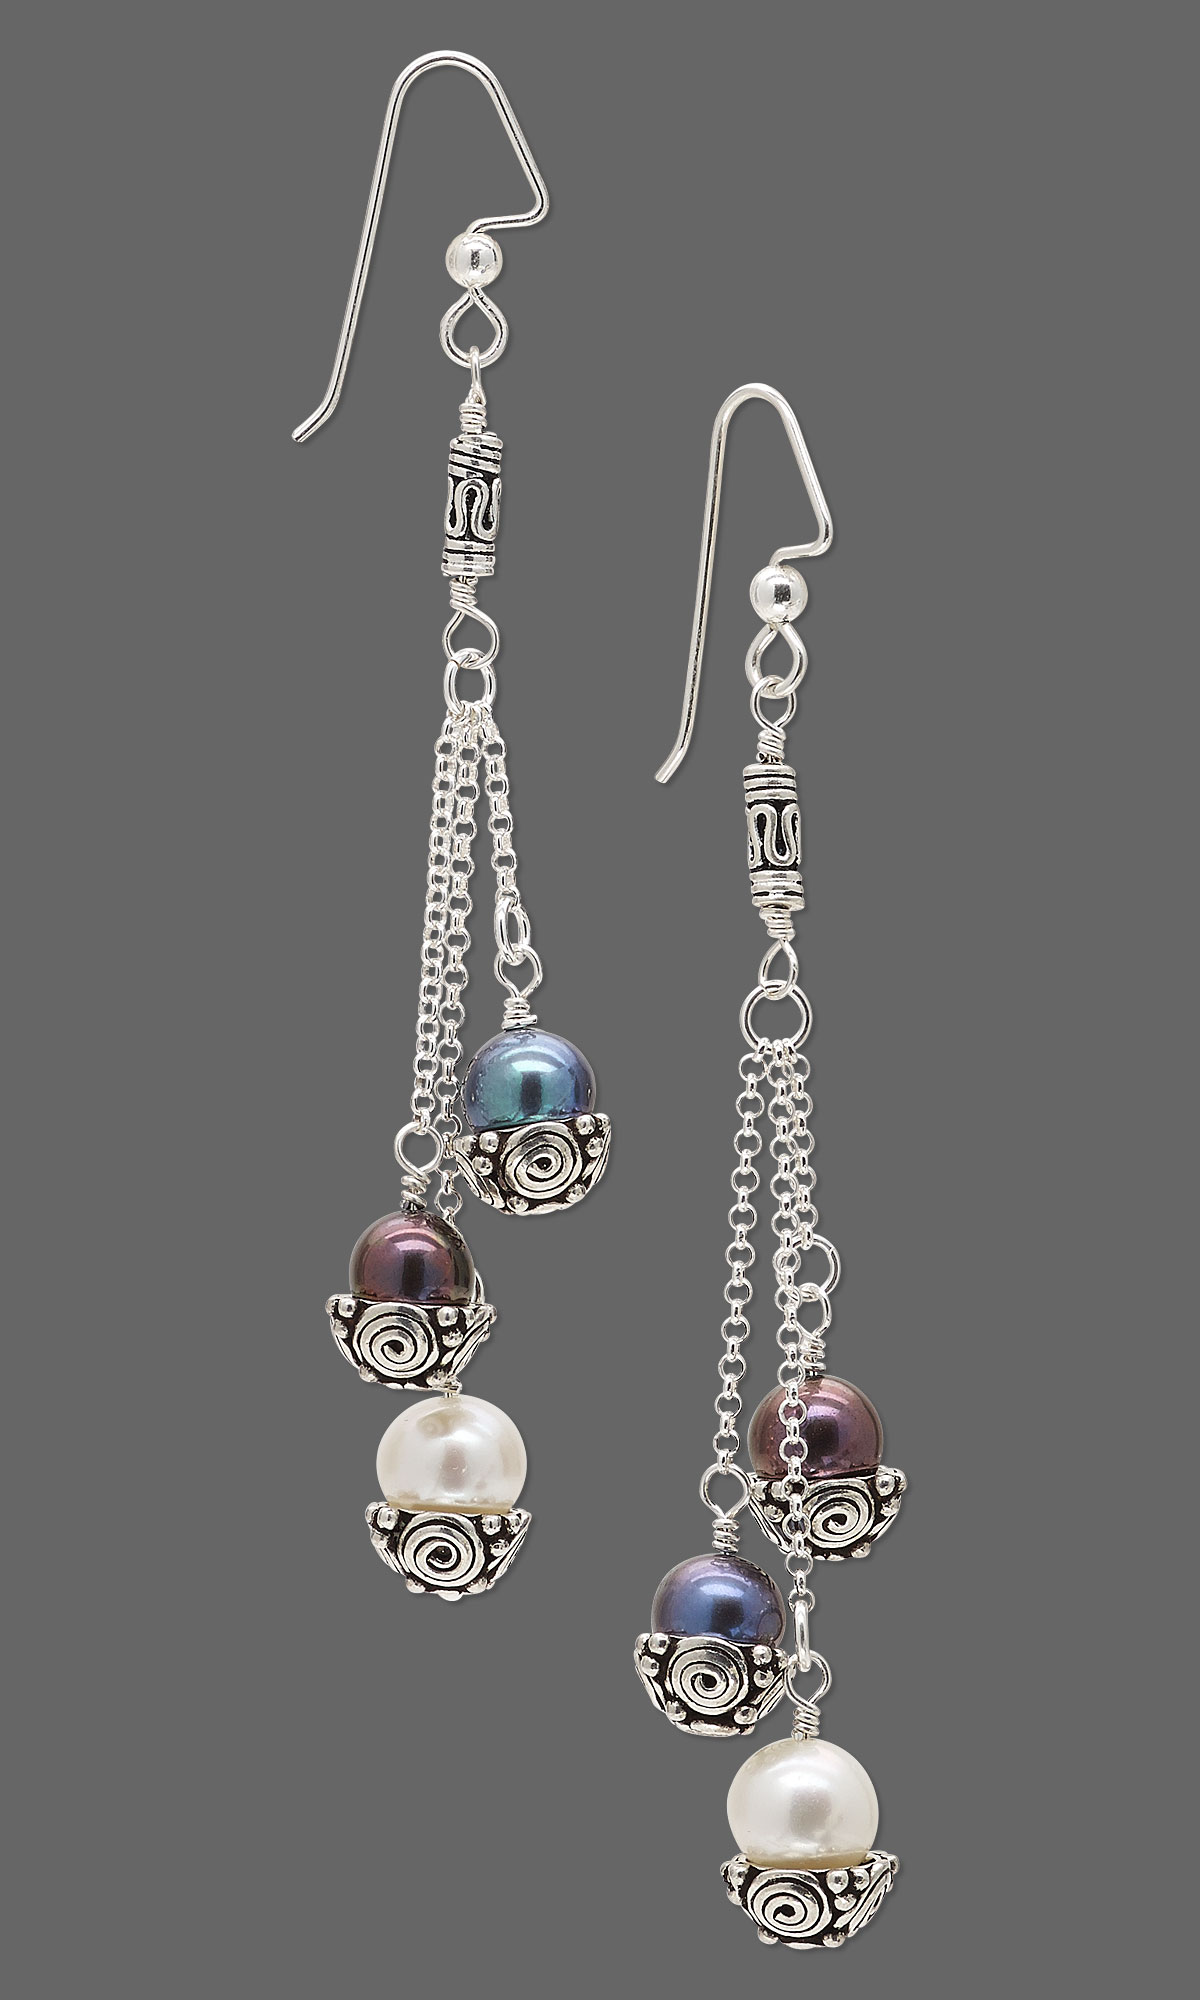 jewelry design earrings with cultured freshwater pearls